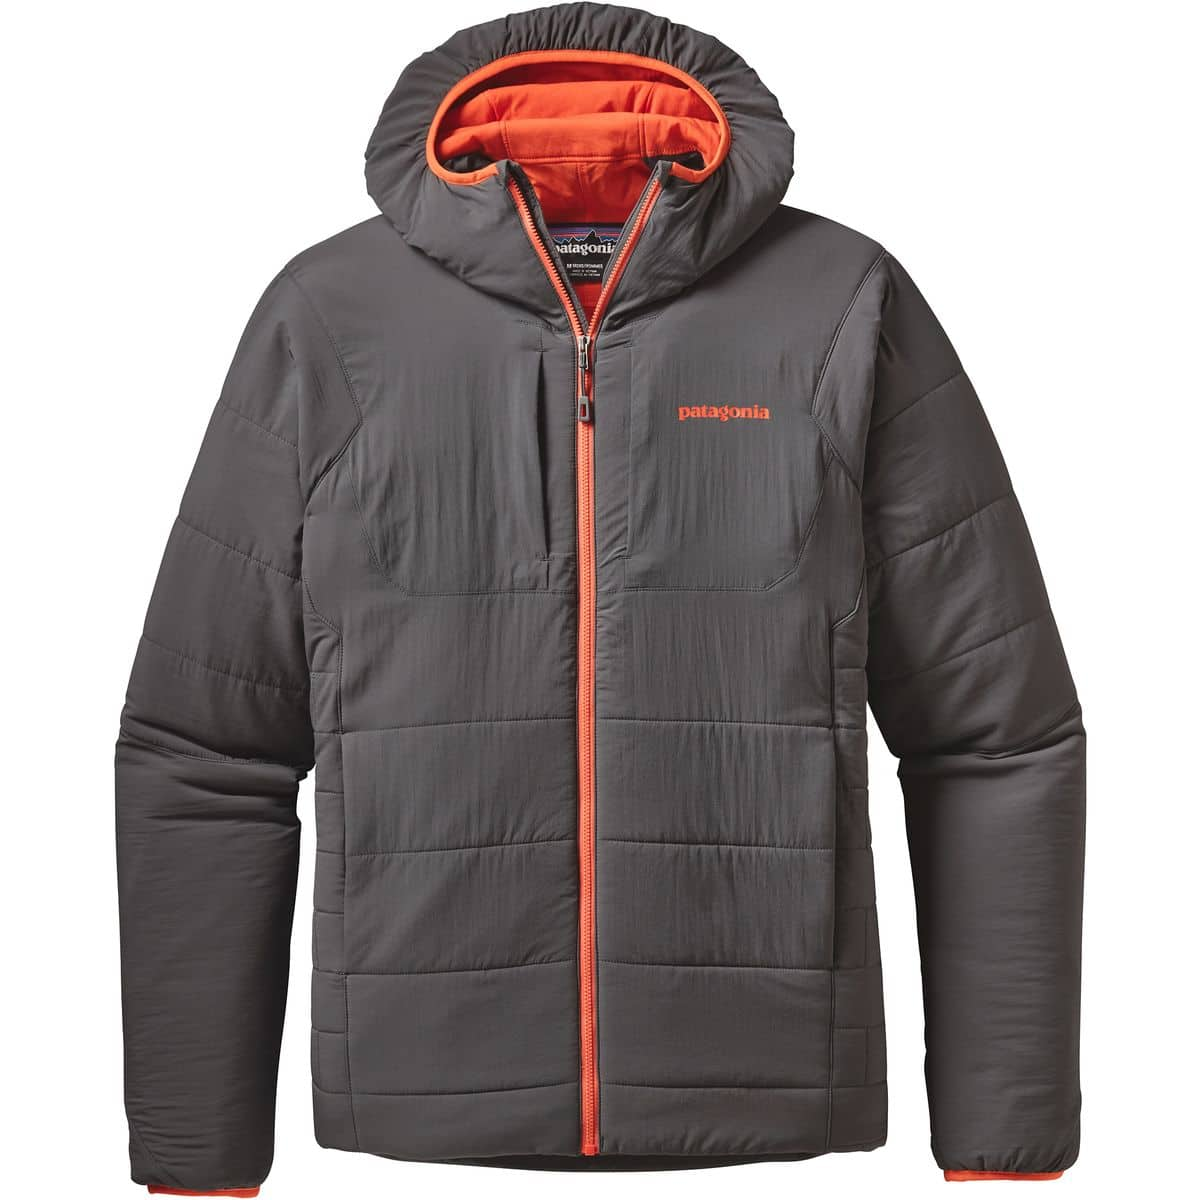 Backcountry Patagonia Sale Up to 50% Off